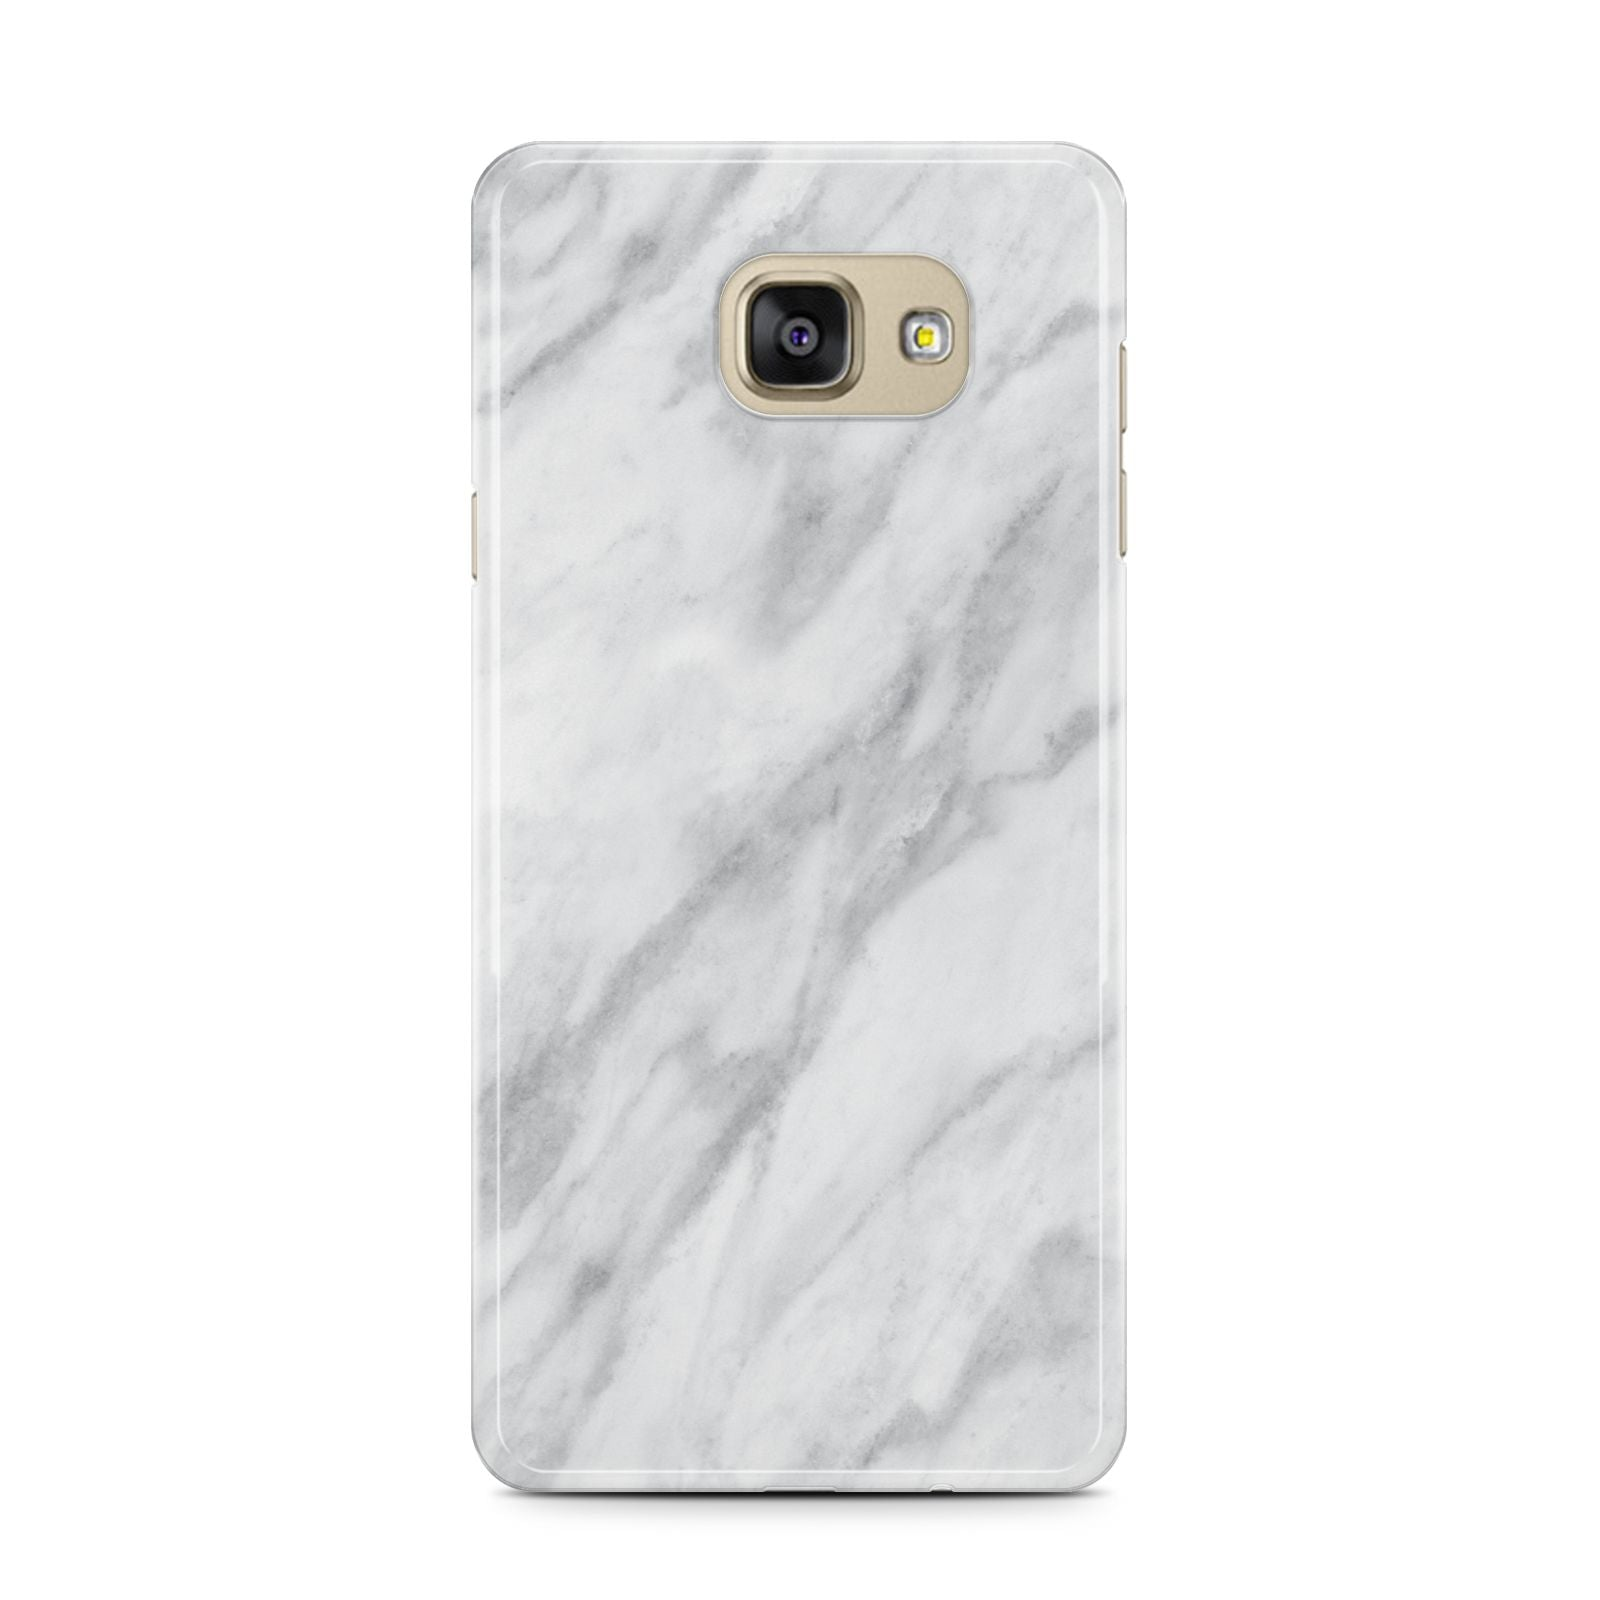 Faux Marble Effect Italian Samsung Galaxy A7 2016 Case on gold phone